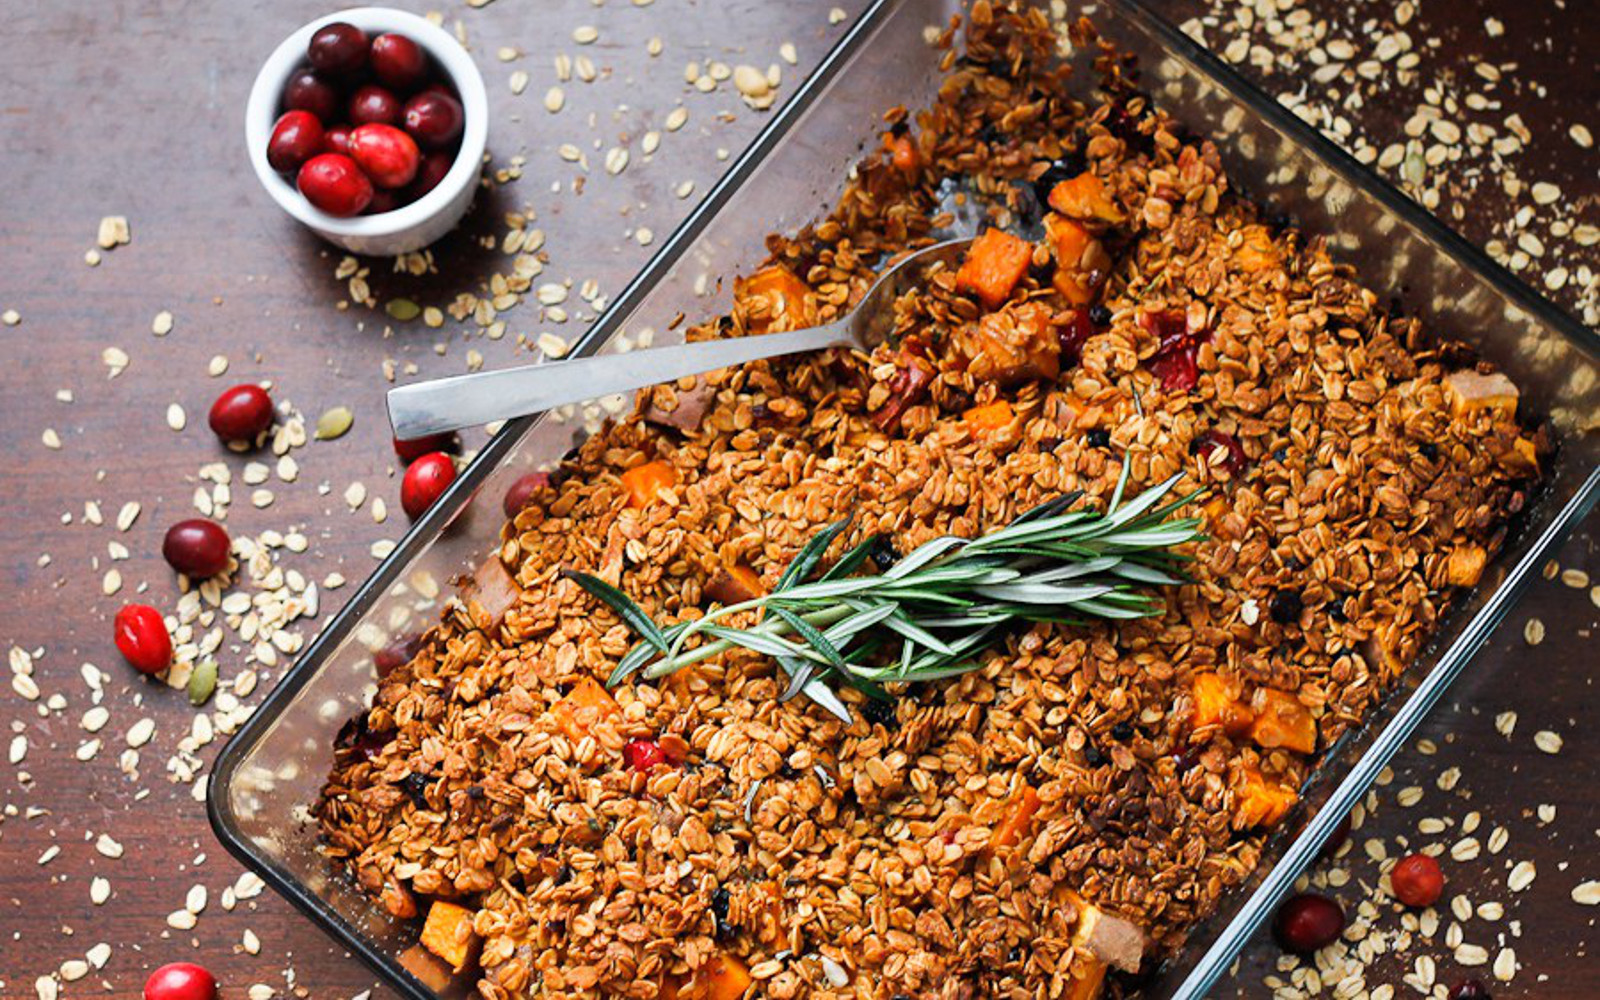 Sweet Potato Casserole With Crunchy Oat Topping 1.jpg